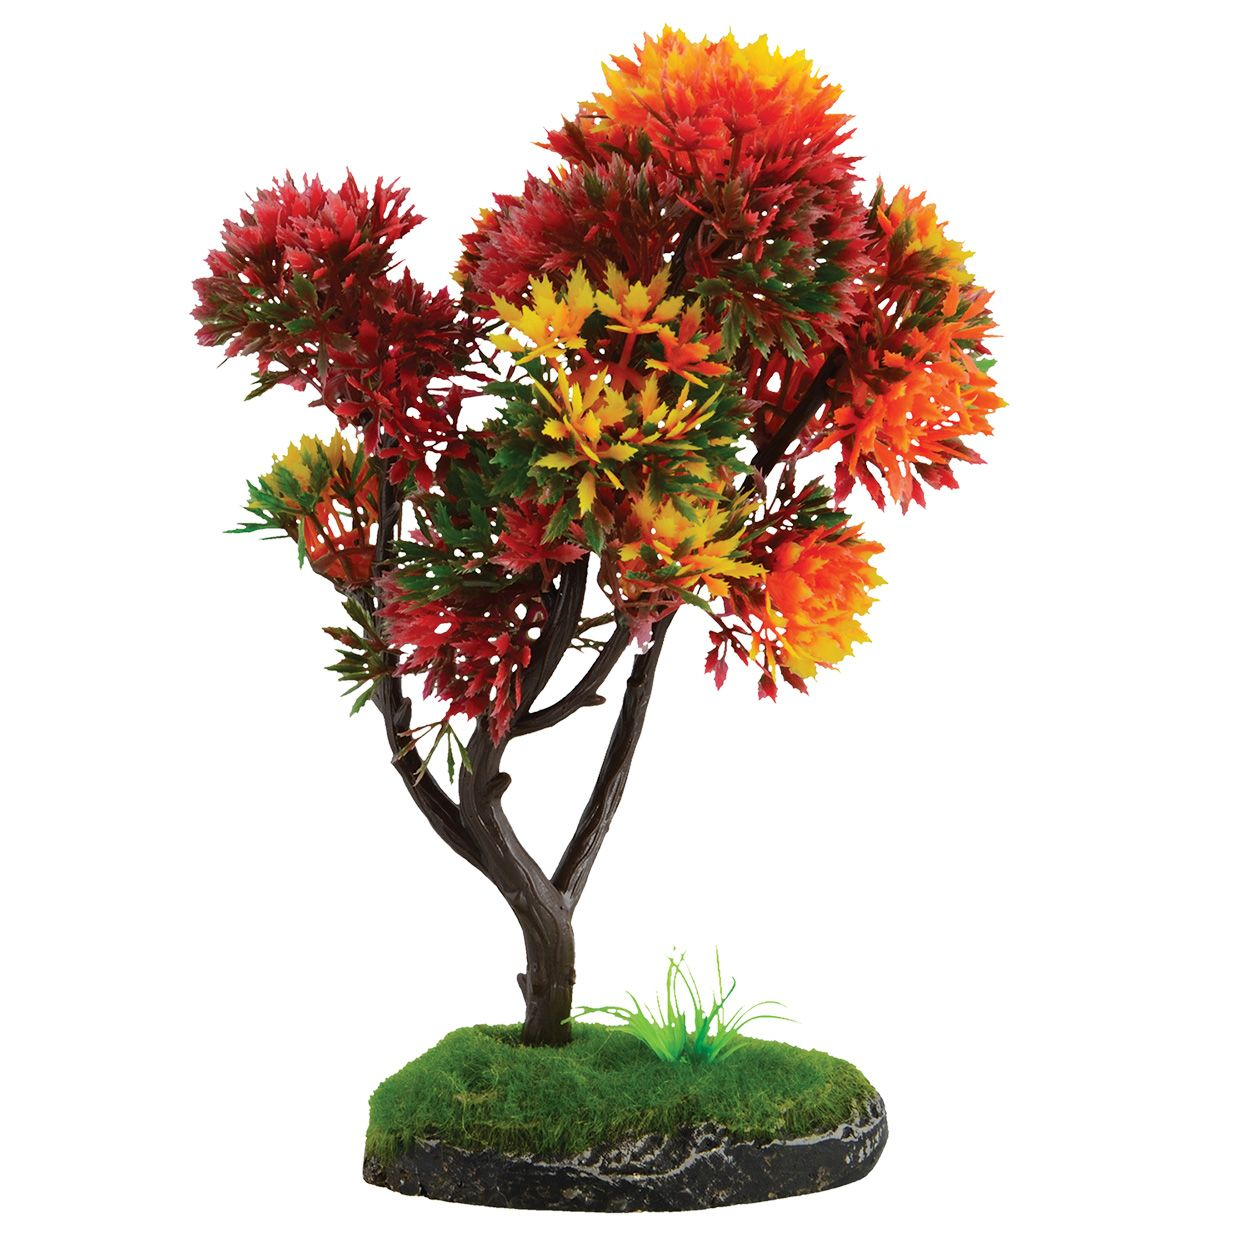 Underwater Treasures Bonsai Red and Yellow Tree - 7.5 inch